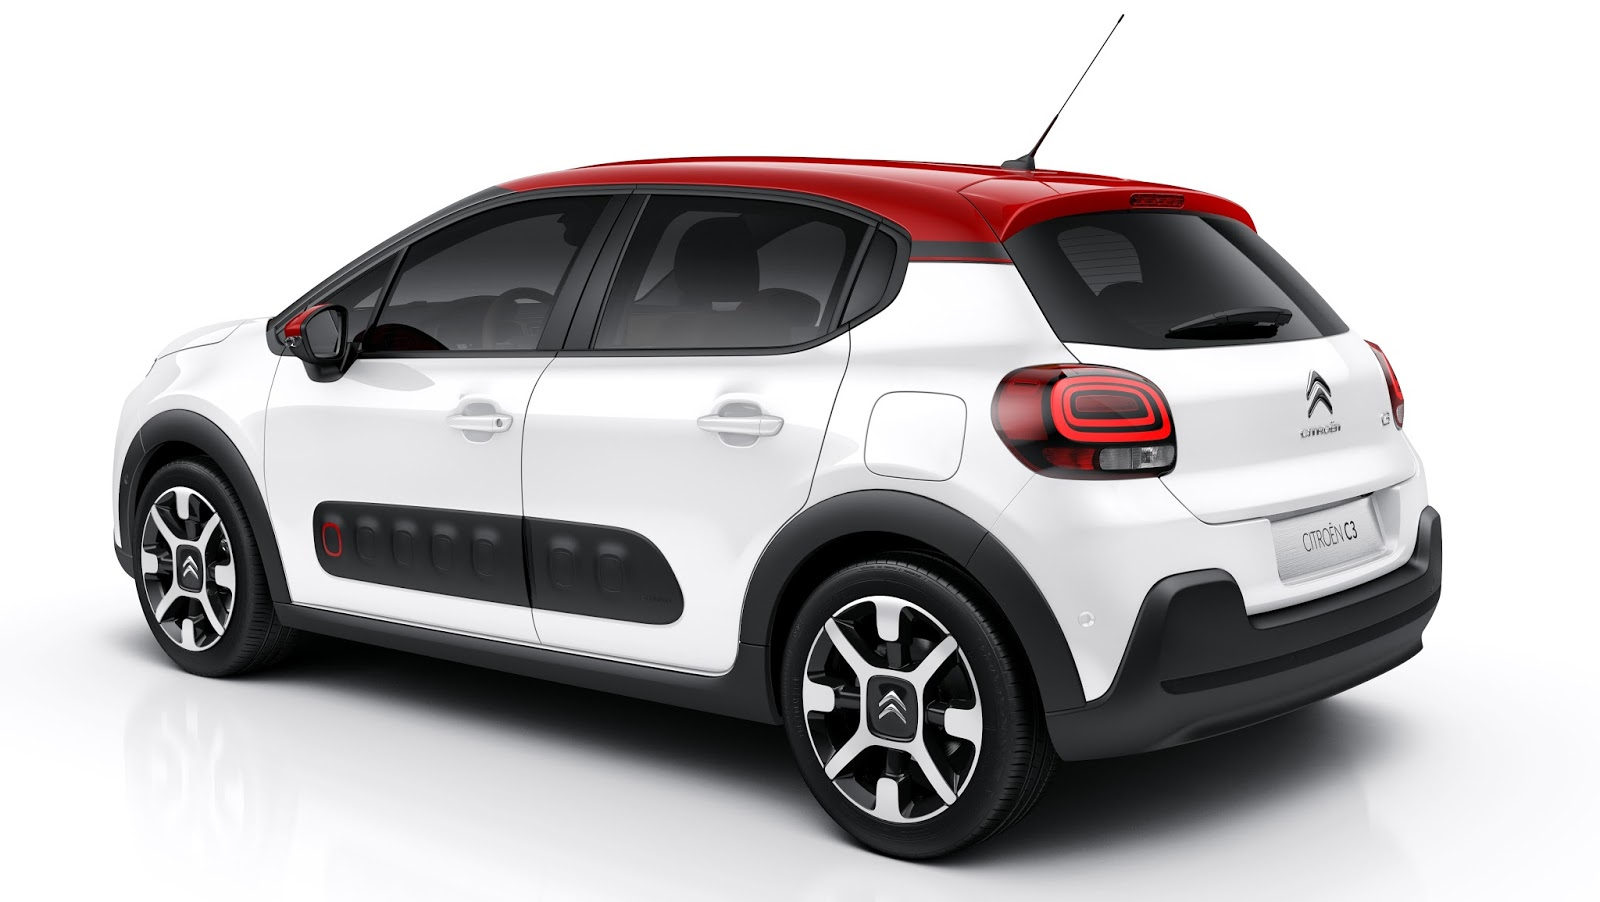 2017 citroen c3 leaks ahead of official reveal looks like a smaller c4 cactus autoevolution. Black Bedroom Furniture Sets. Home Design Ideas